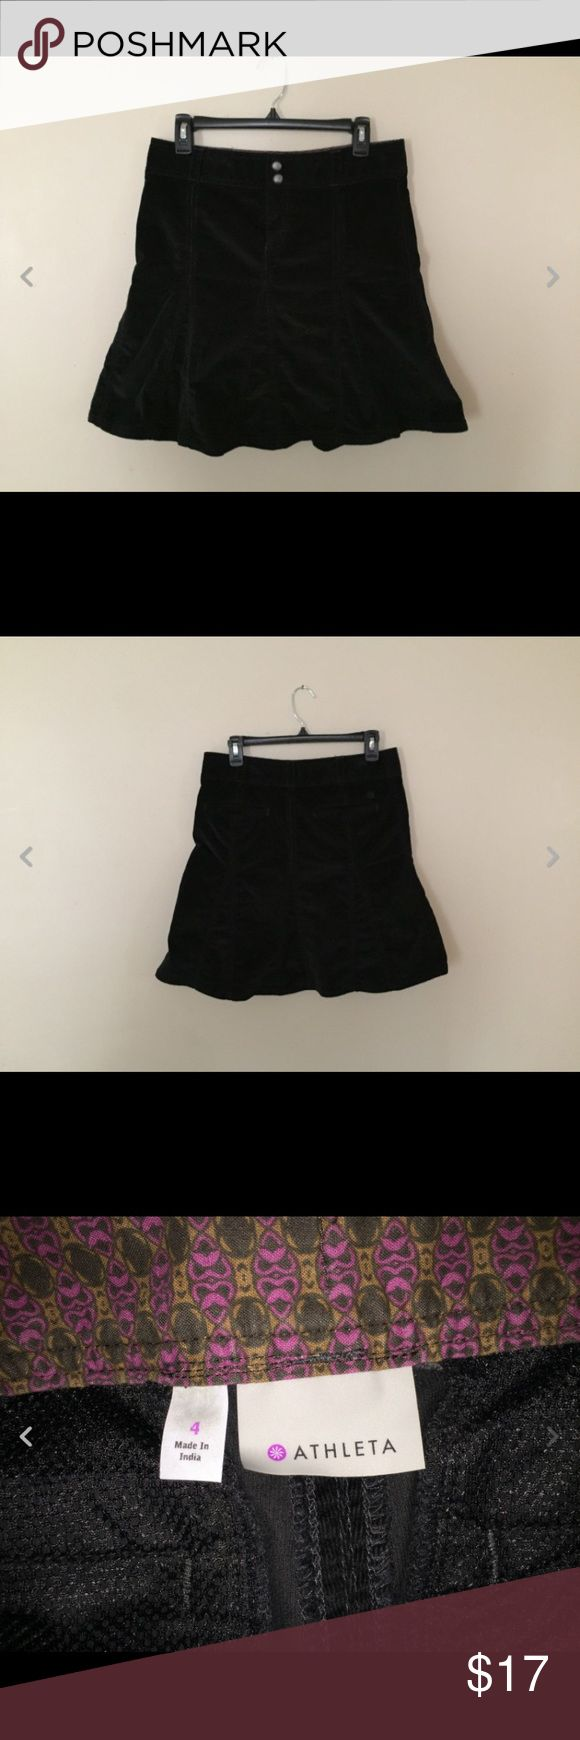 Athleta Black Velour Skirt sz 4 Very good condition. Measures about 30 inch waist x 19 inches in length Athleta Skirts Mini